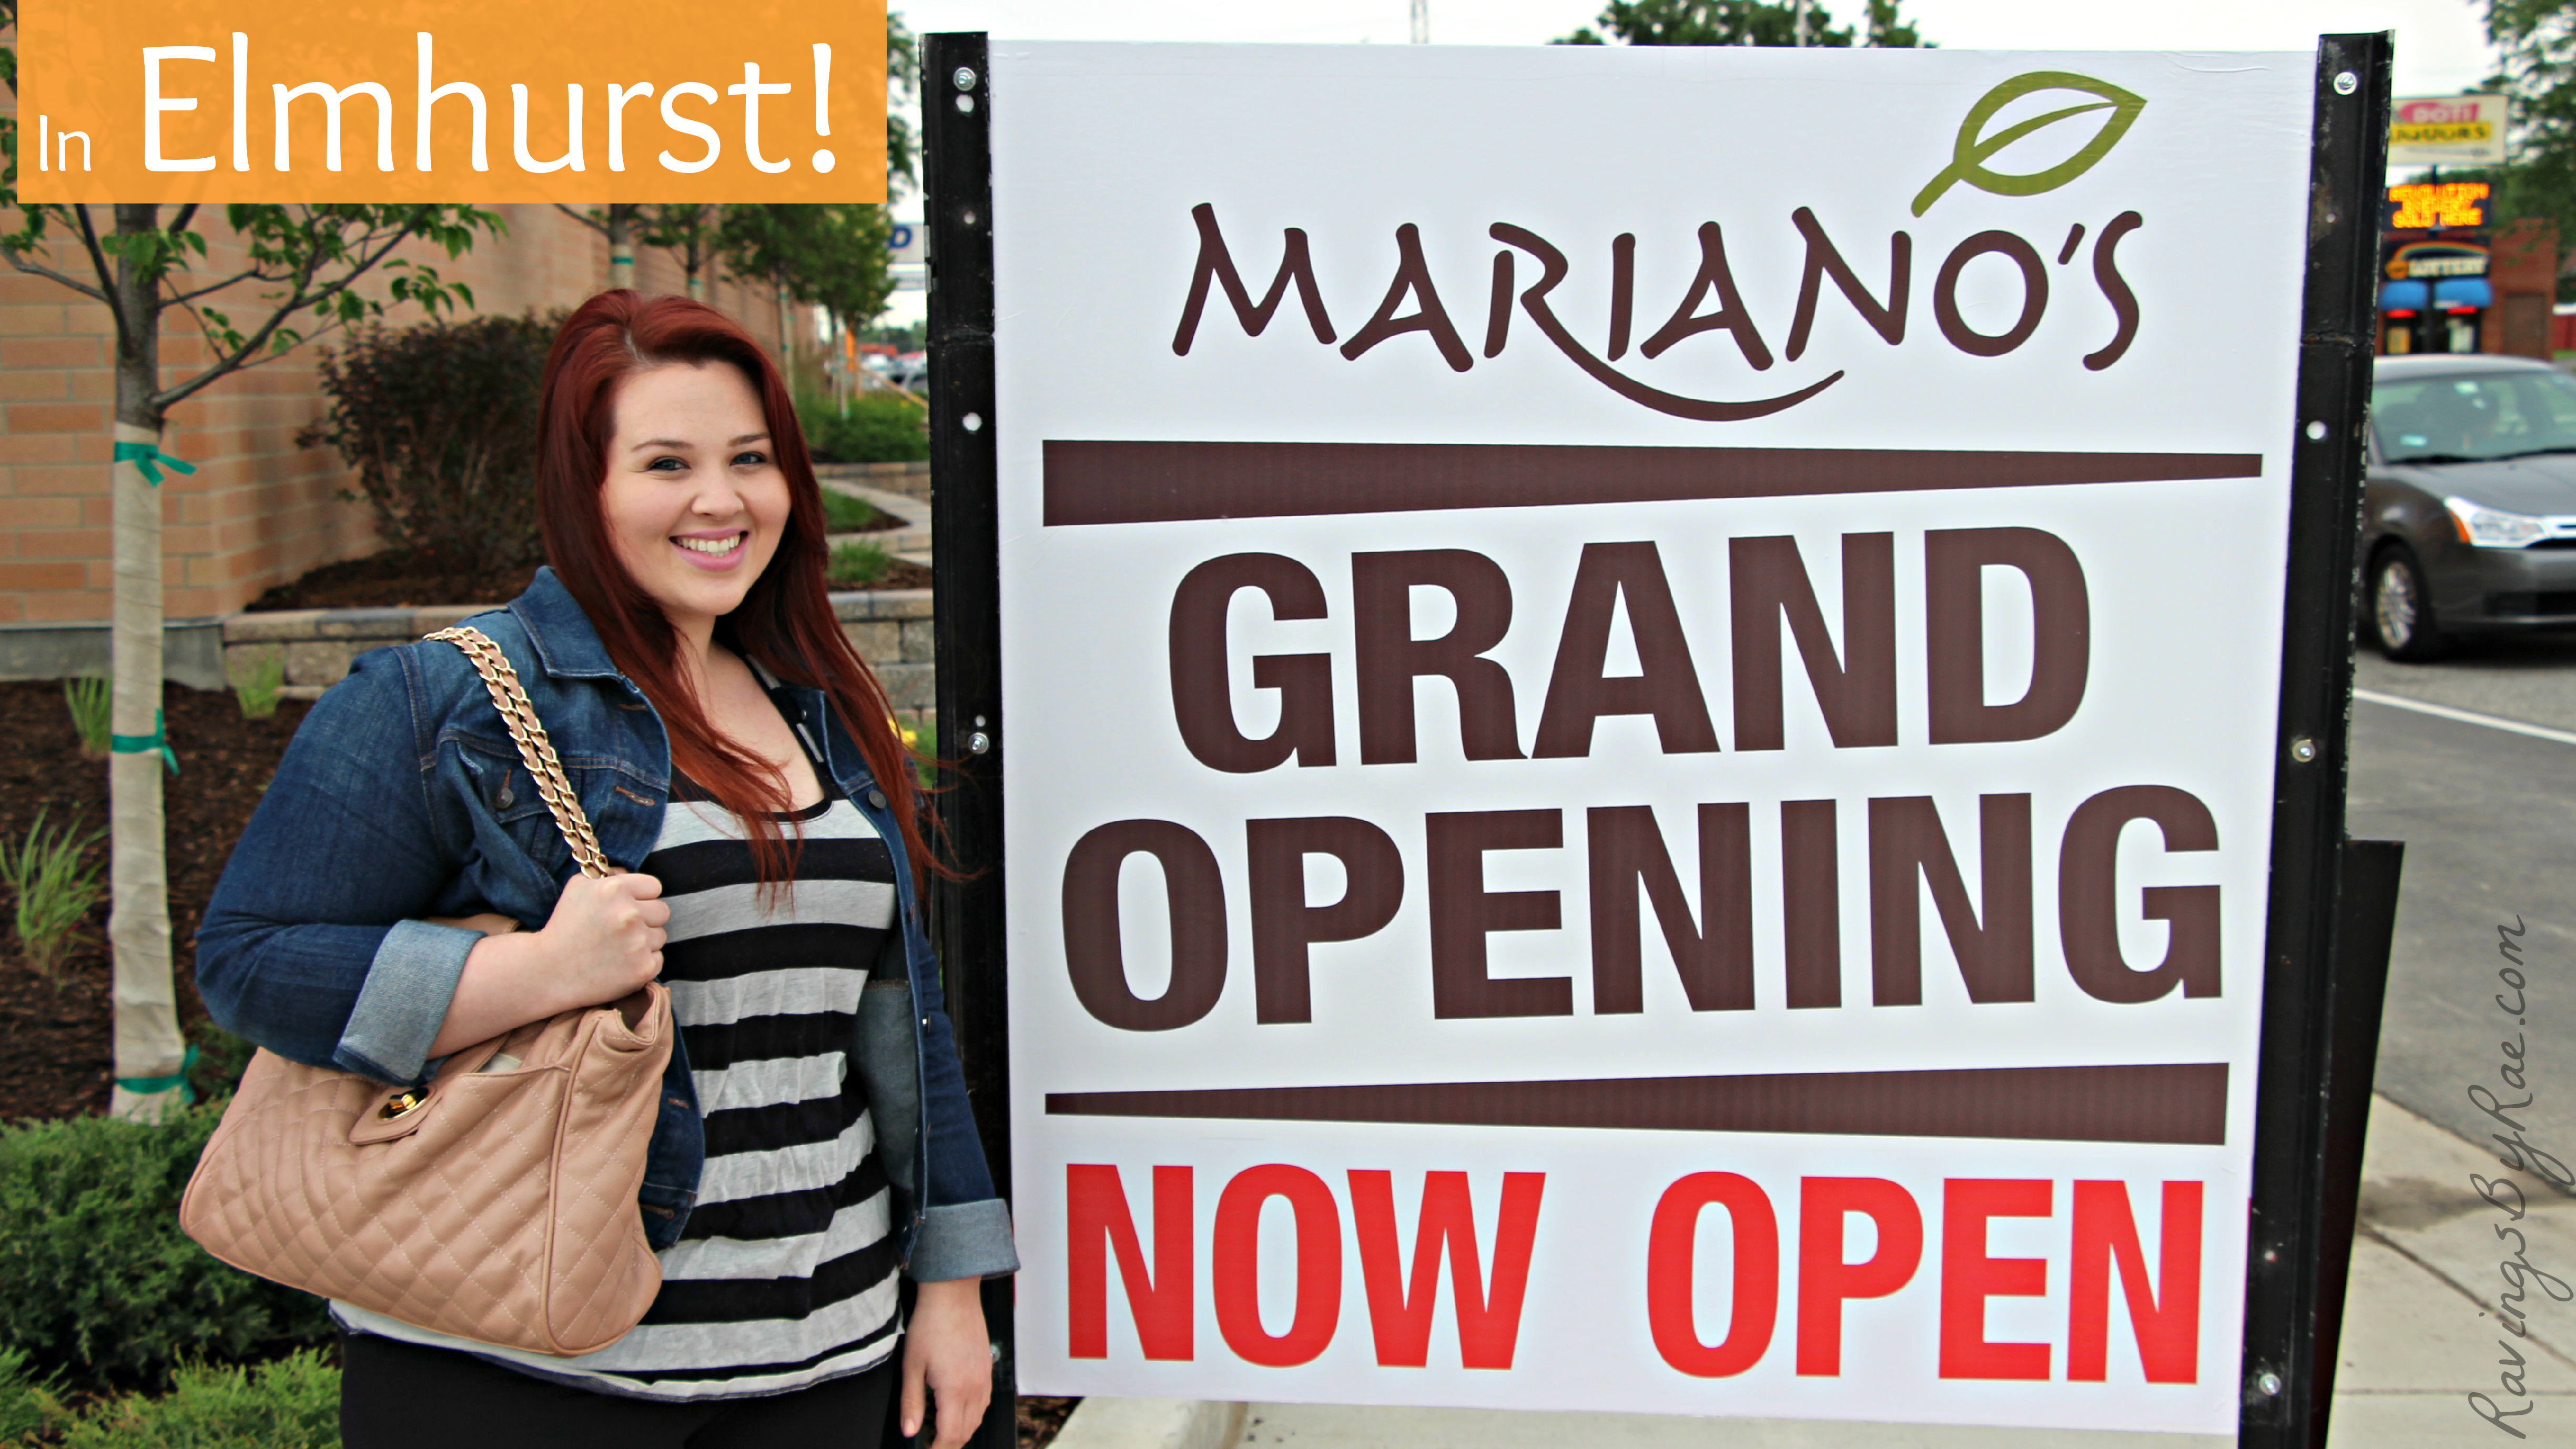 Mariano's Grand Opening In Elmhurst #MyMarianos